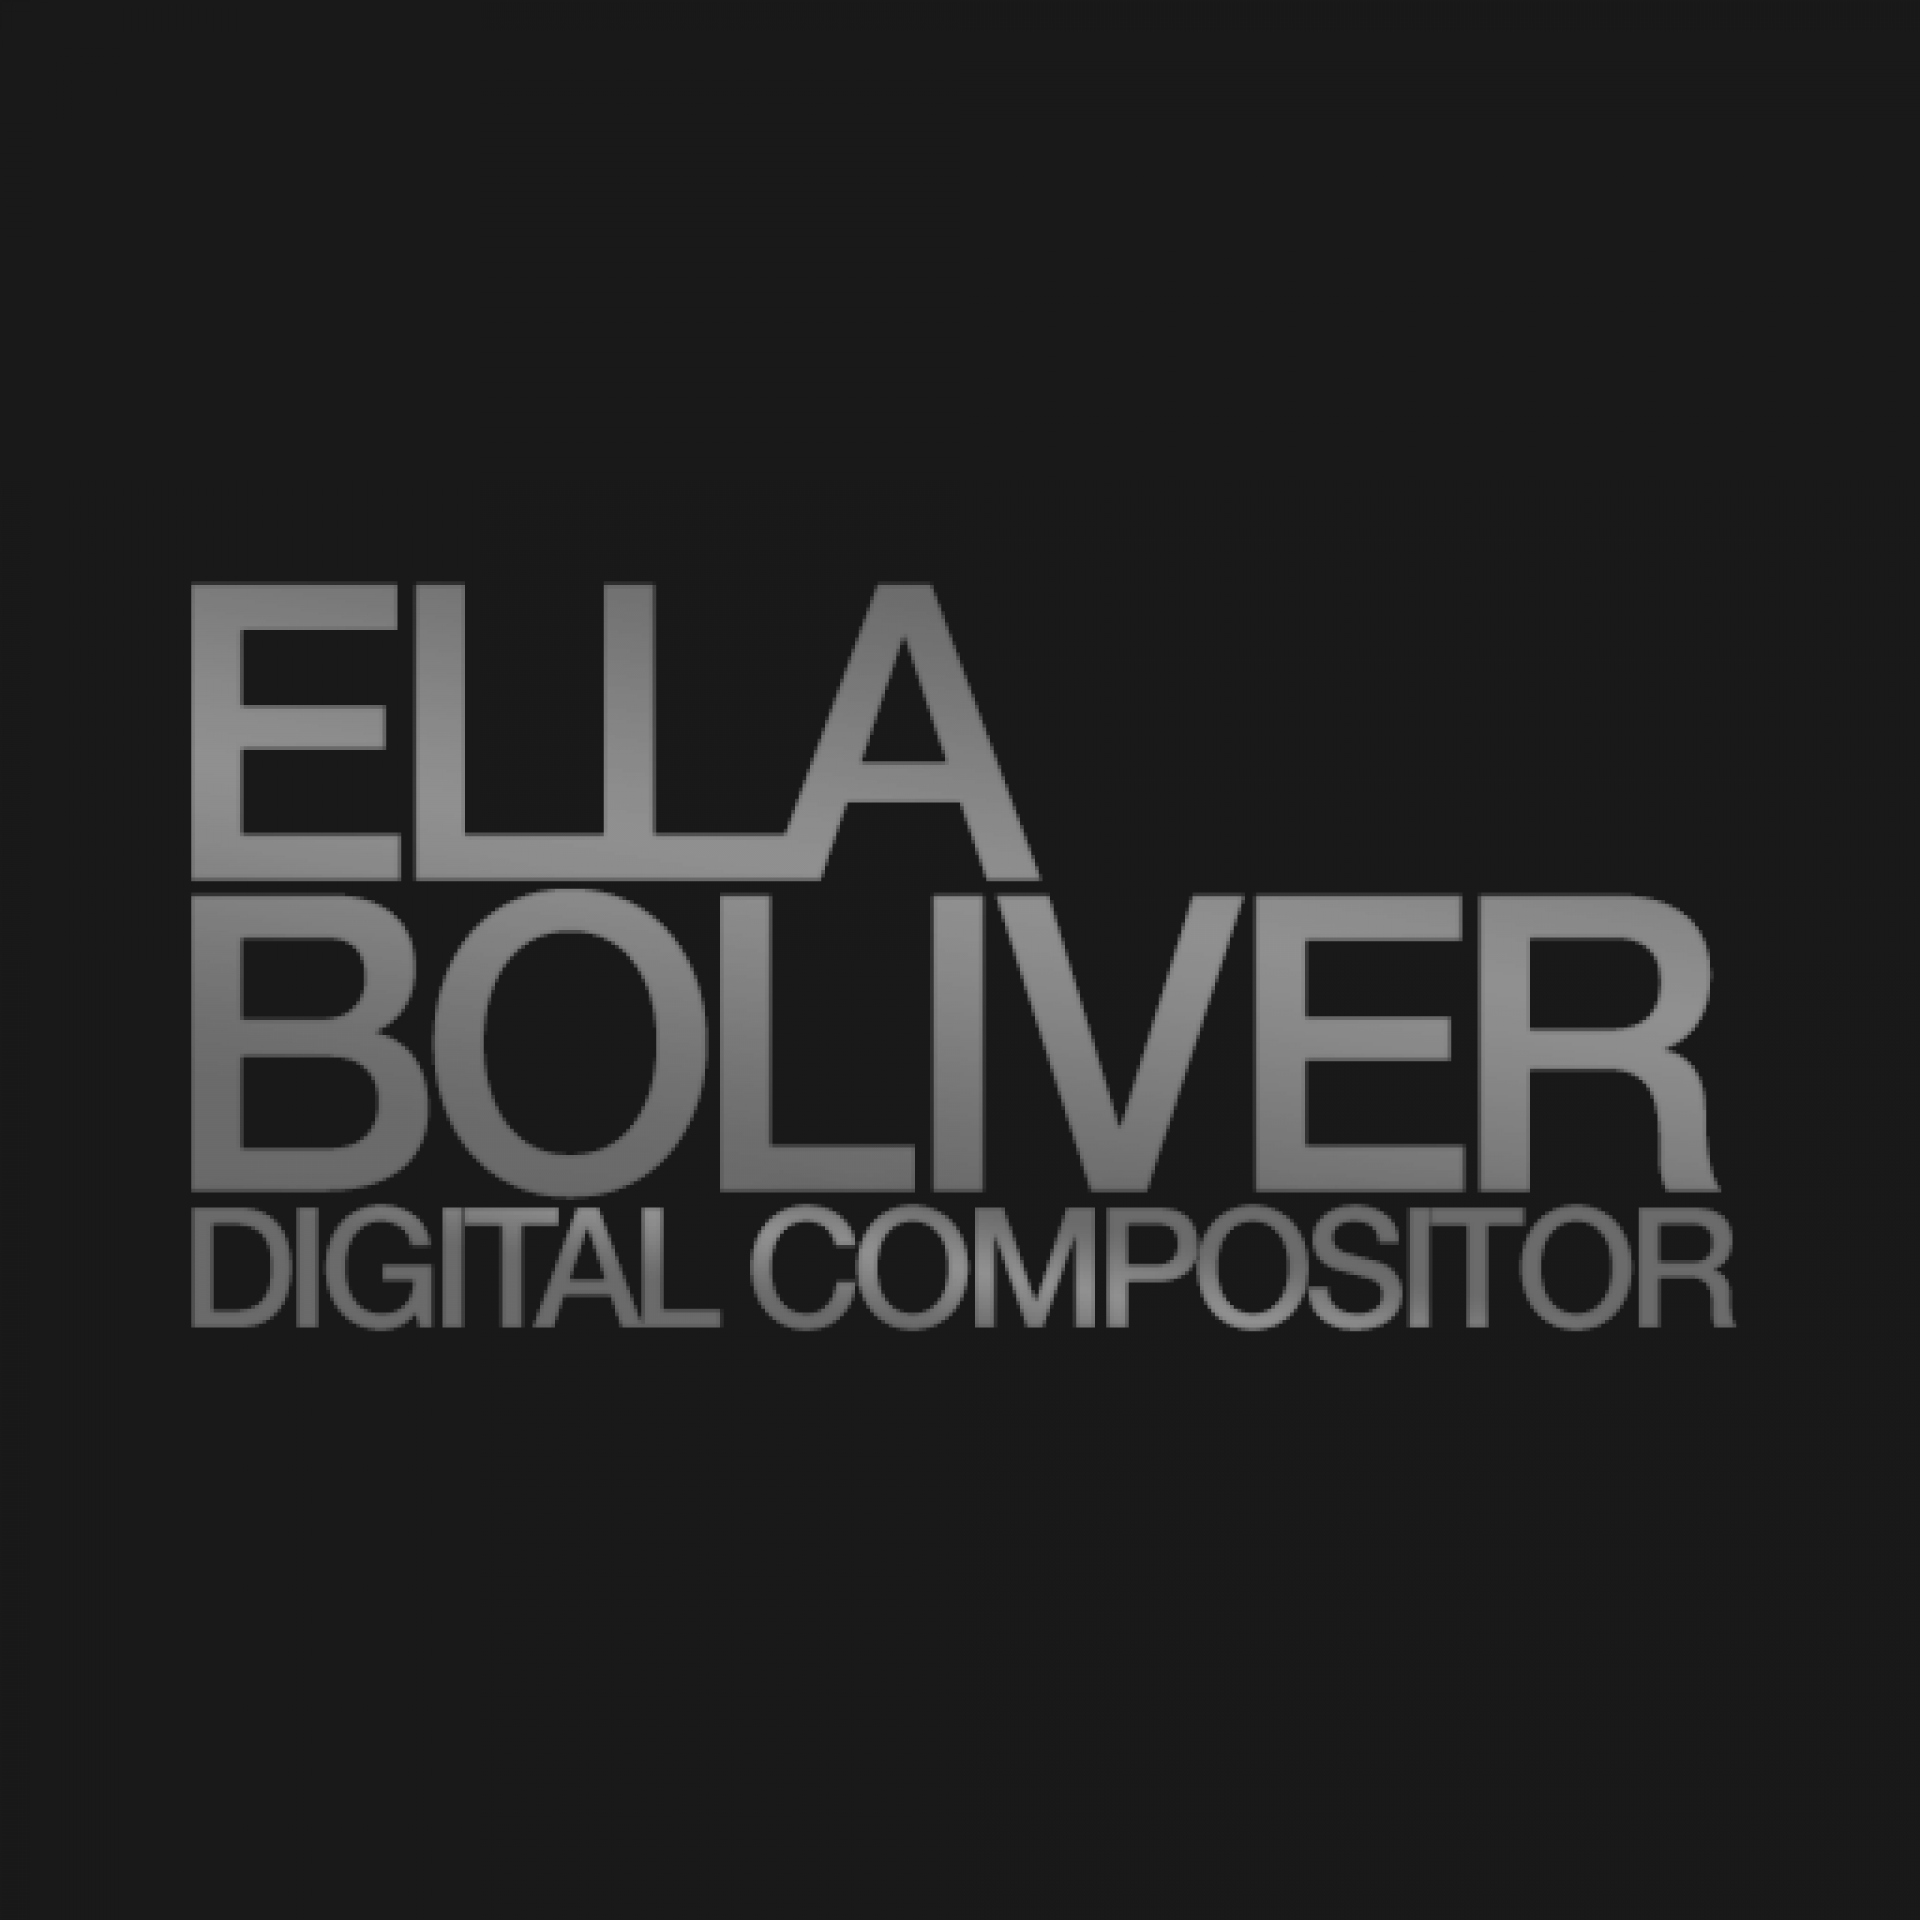 Ella Boliver – Digital Compositor